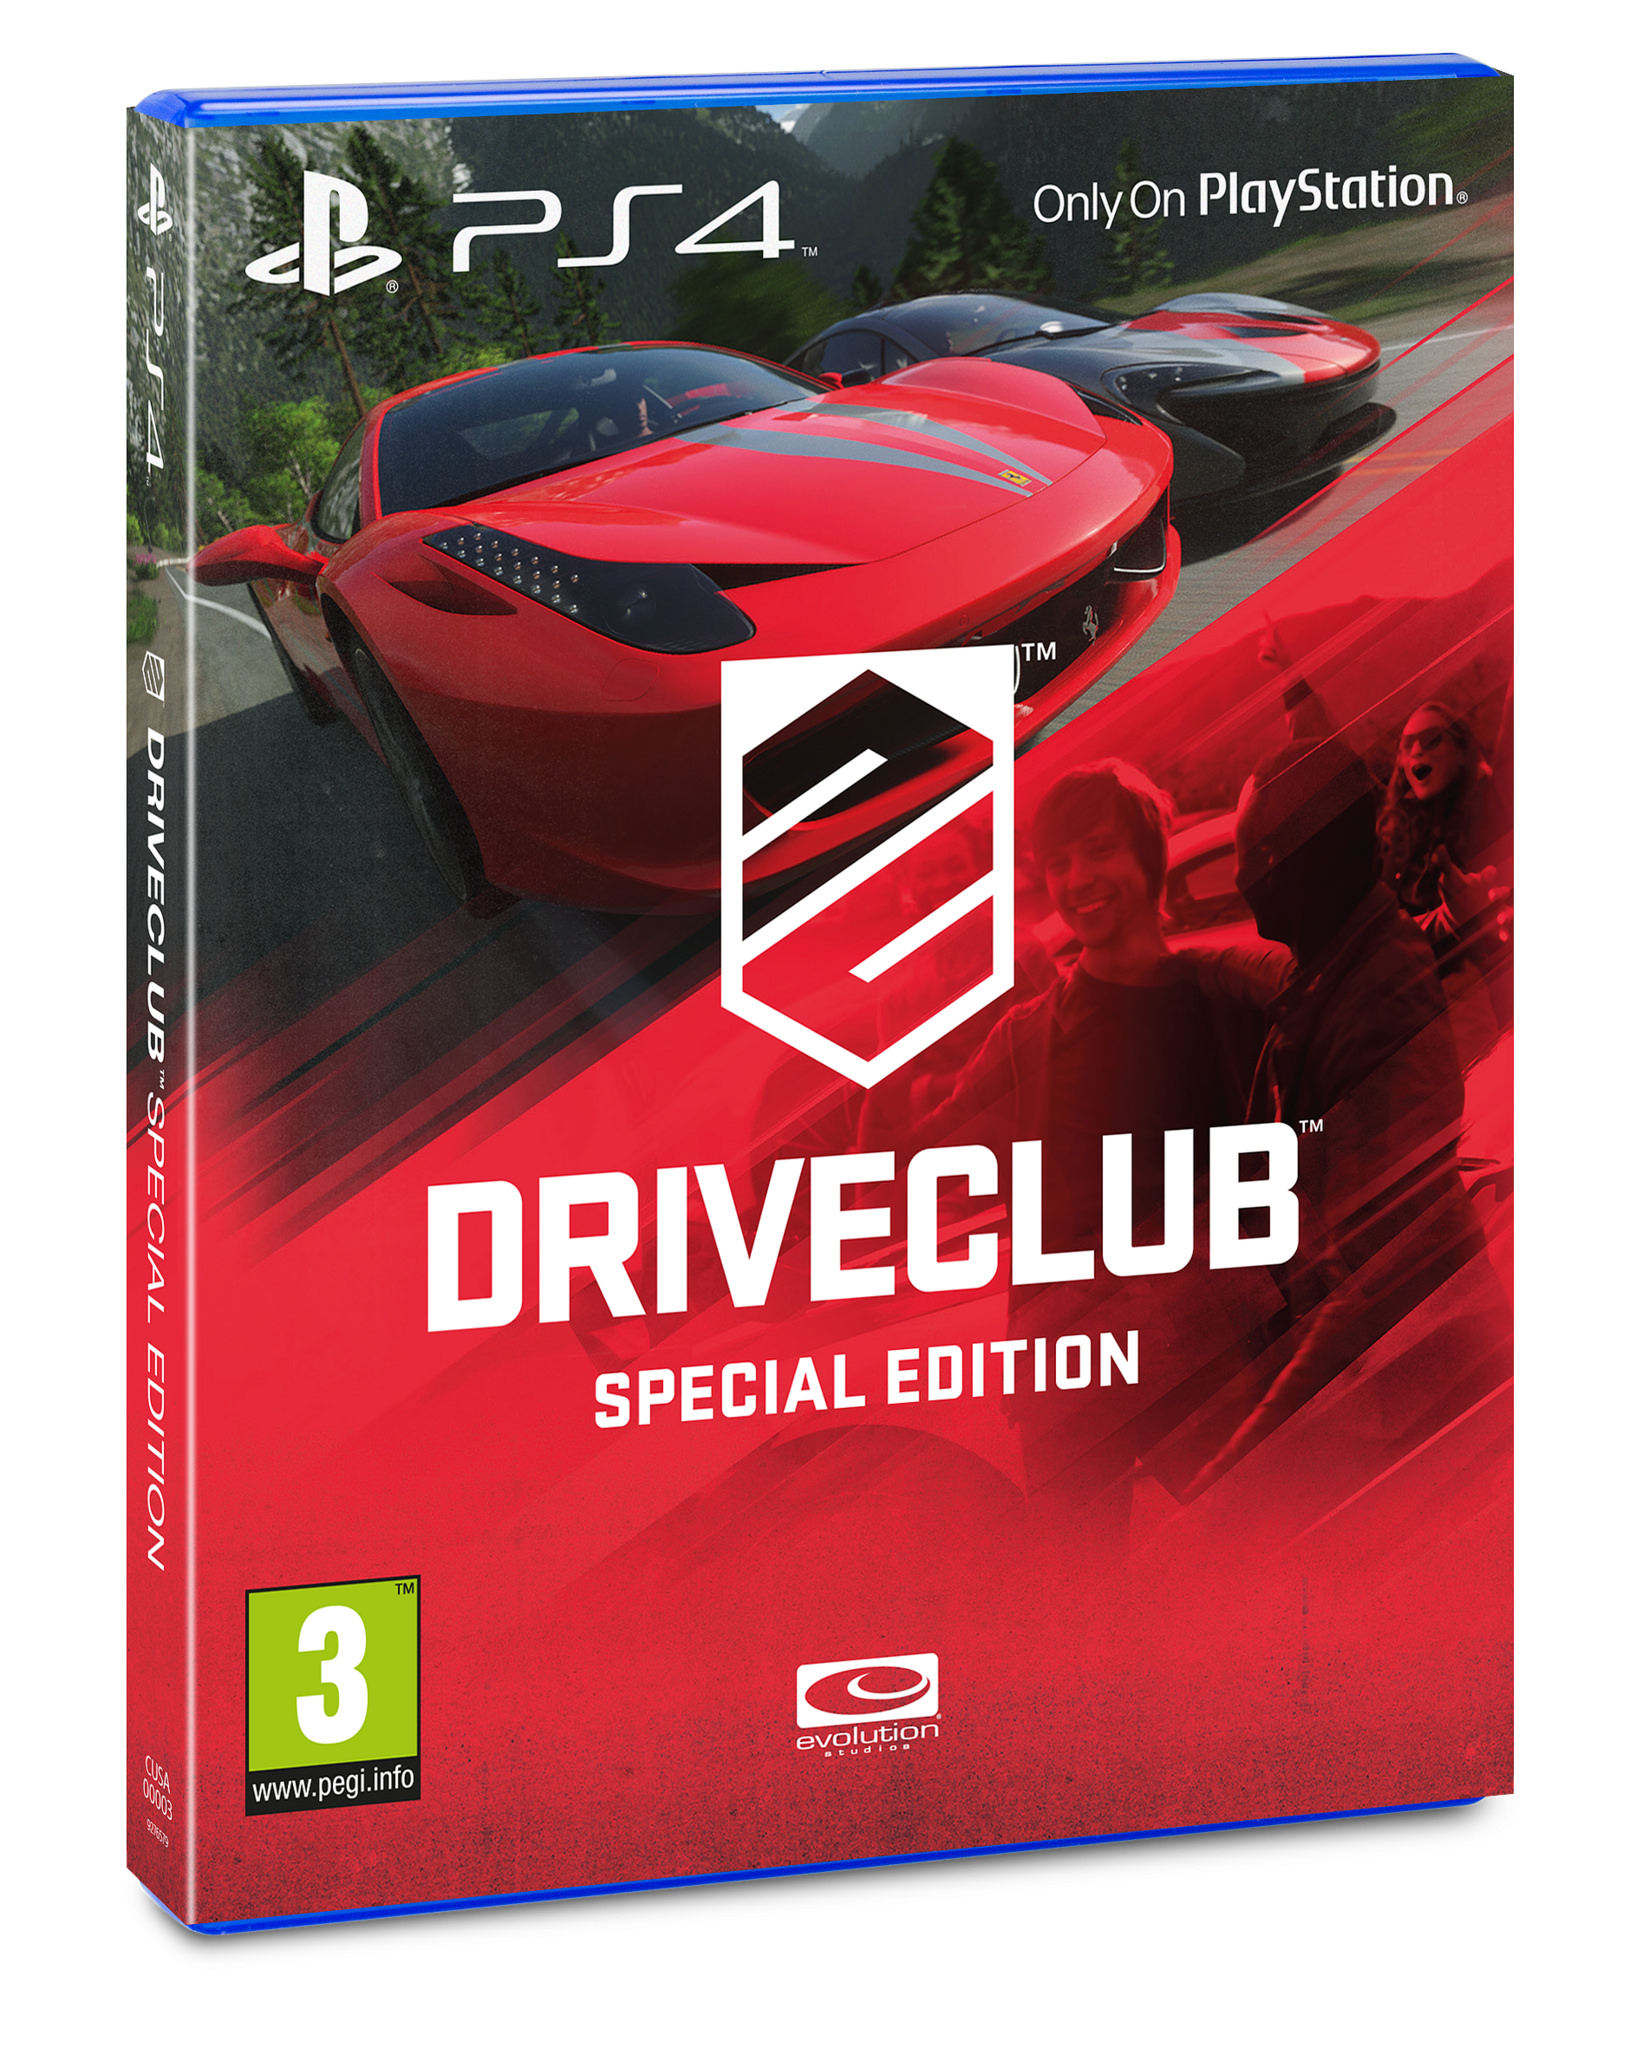 Driveclub special